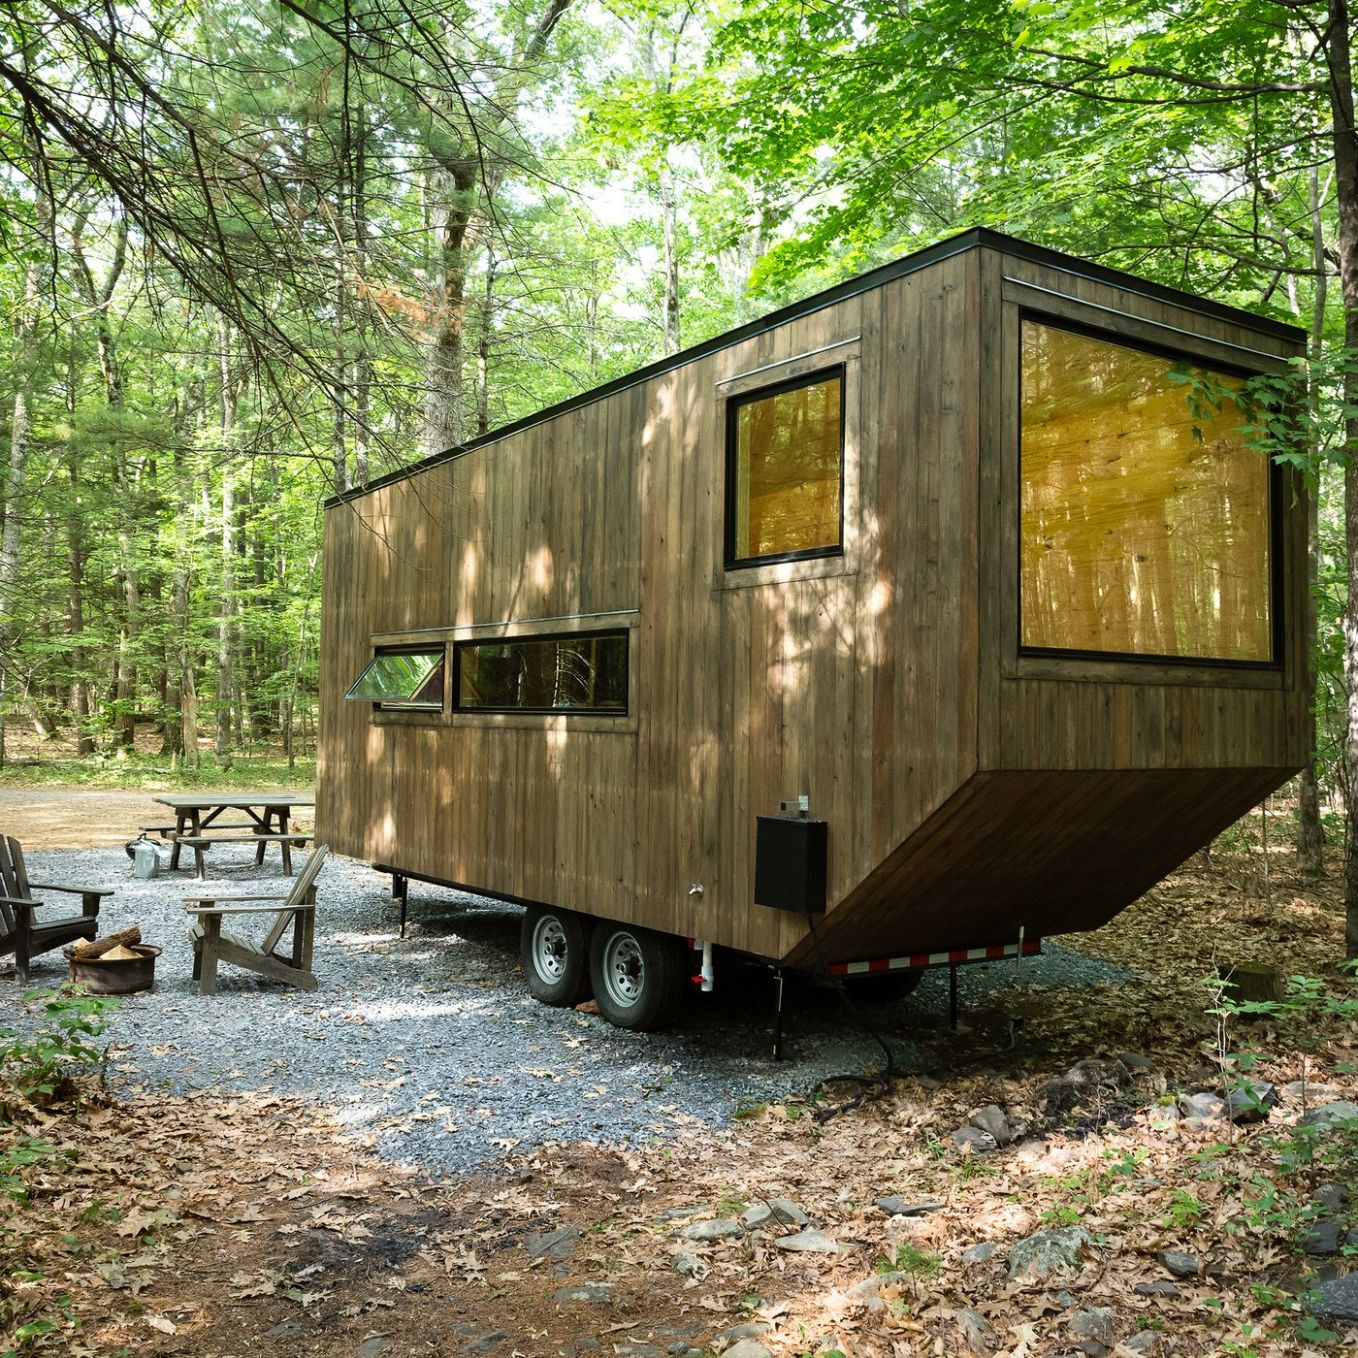 Staten Island will get three tiny houses to rent this summer ...